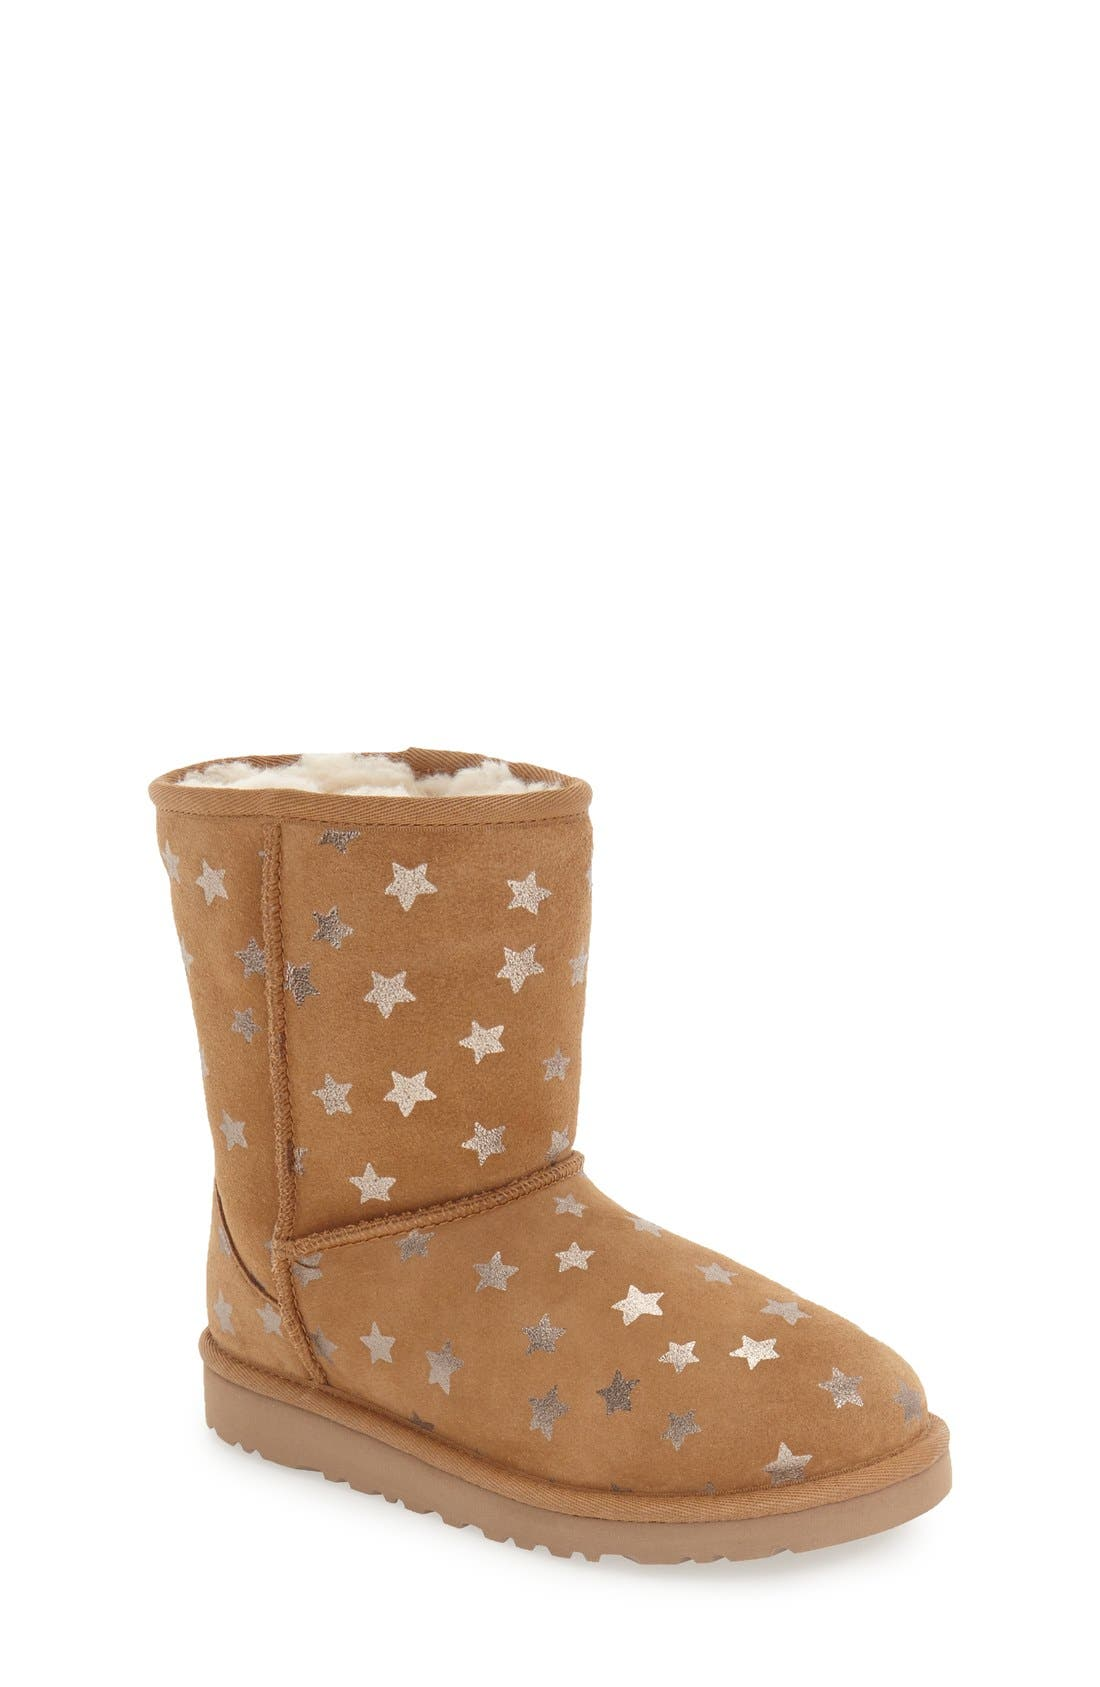 Alternate Image 1 Selected - UGG® Classic Stars Boot (Little Kid & Big Kid) (Nordstrom Exclusive)